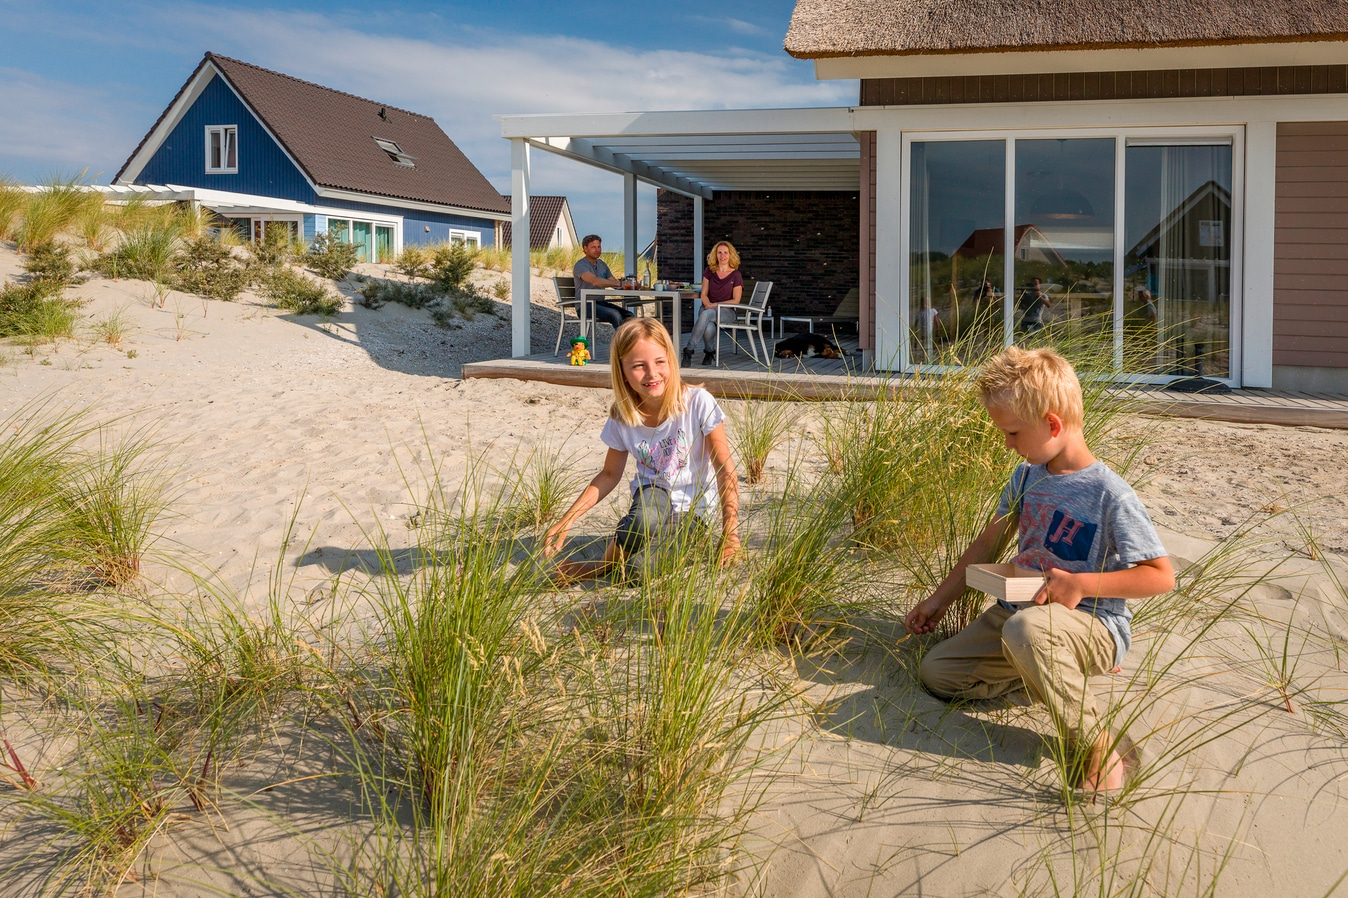 Ouddorp Duin villas and dunes